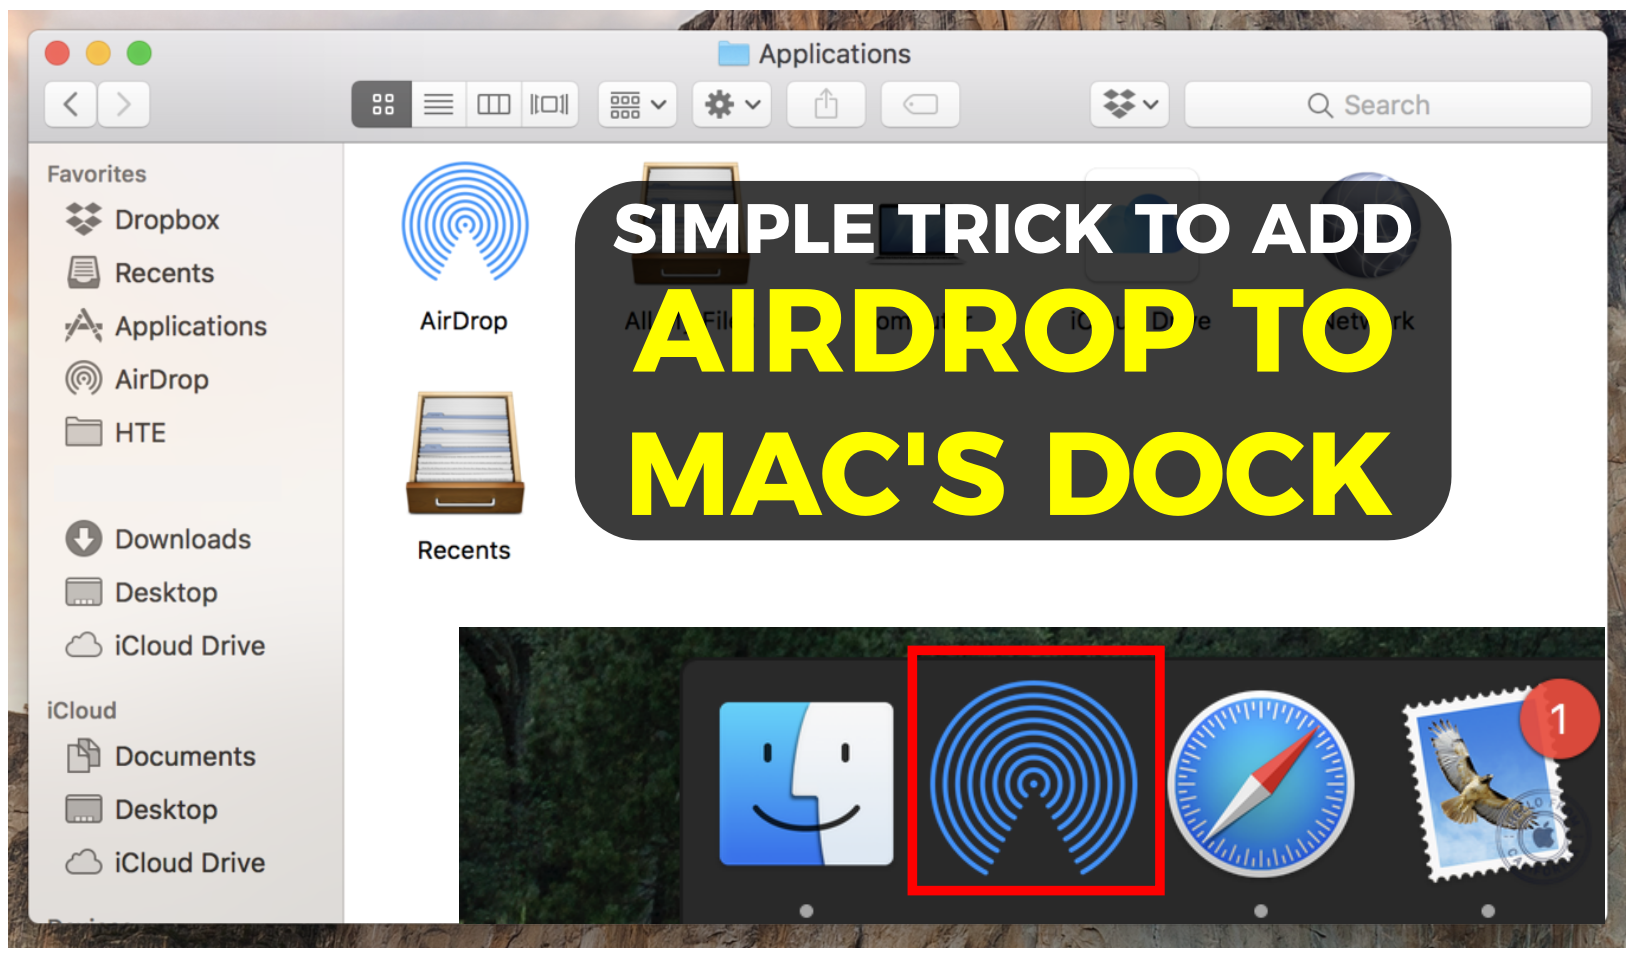 simple-trick-to-add-airdrop-to-imac-dock